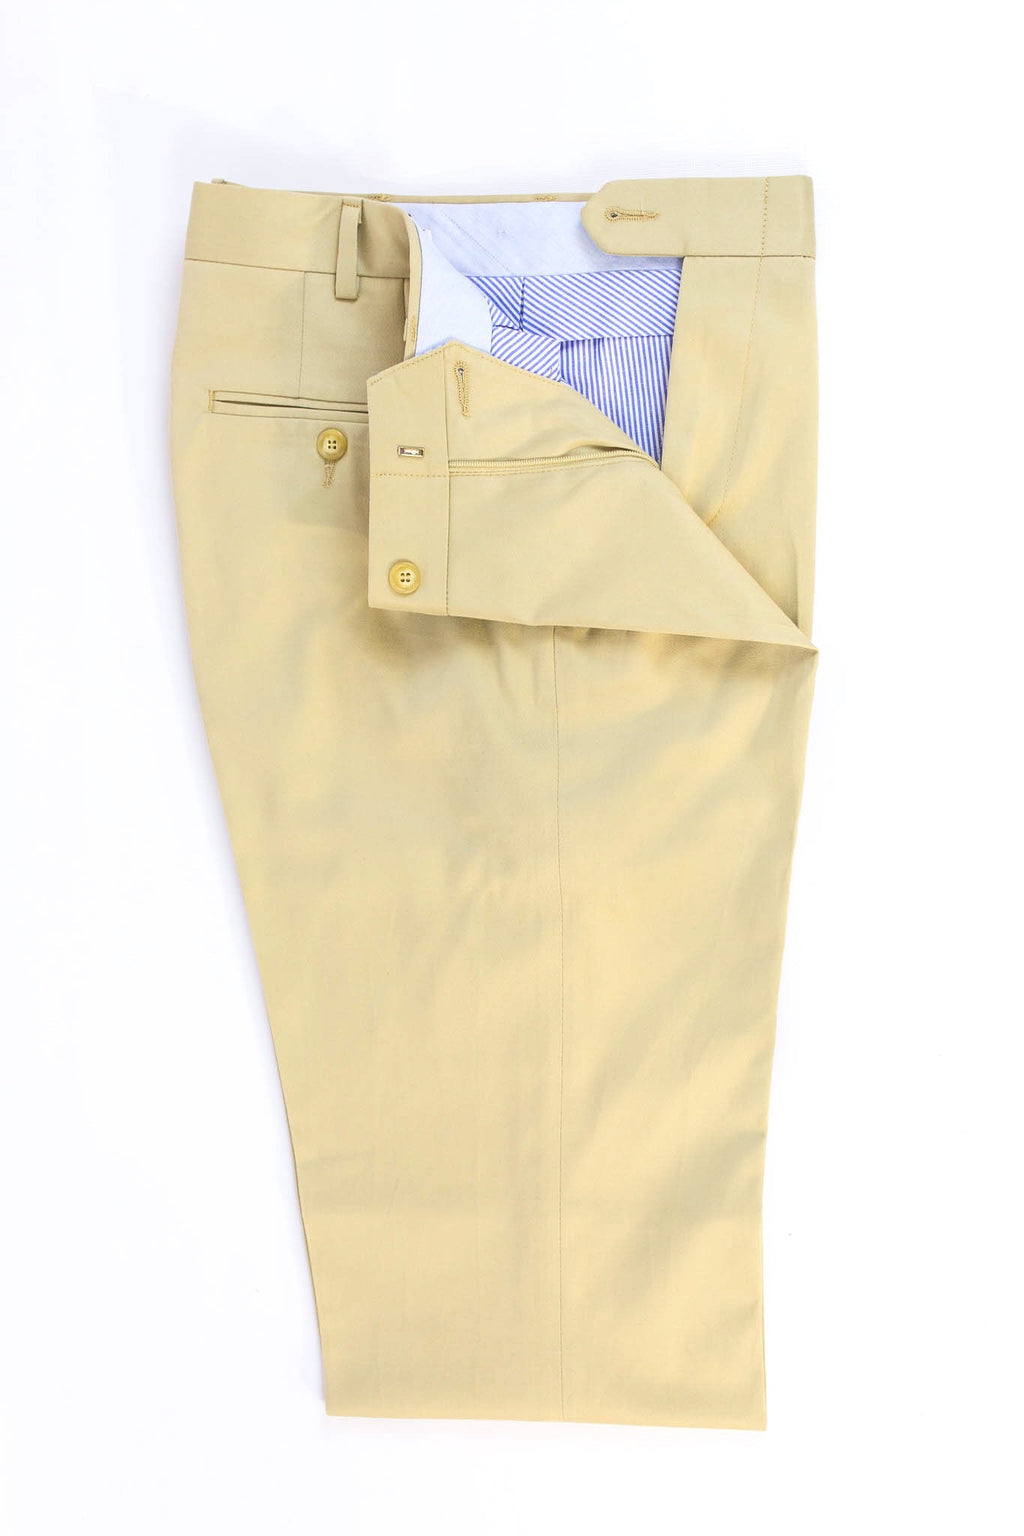 american made cotton trouser